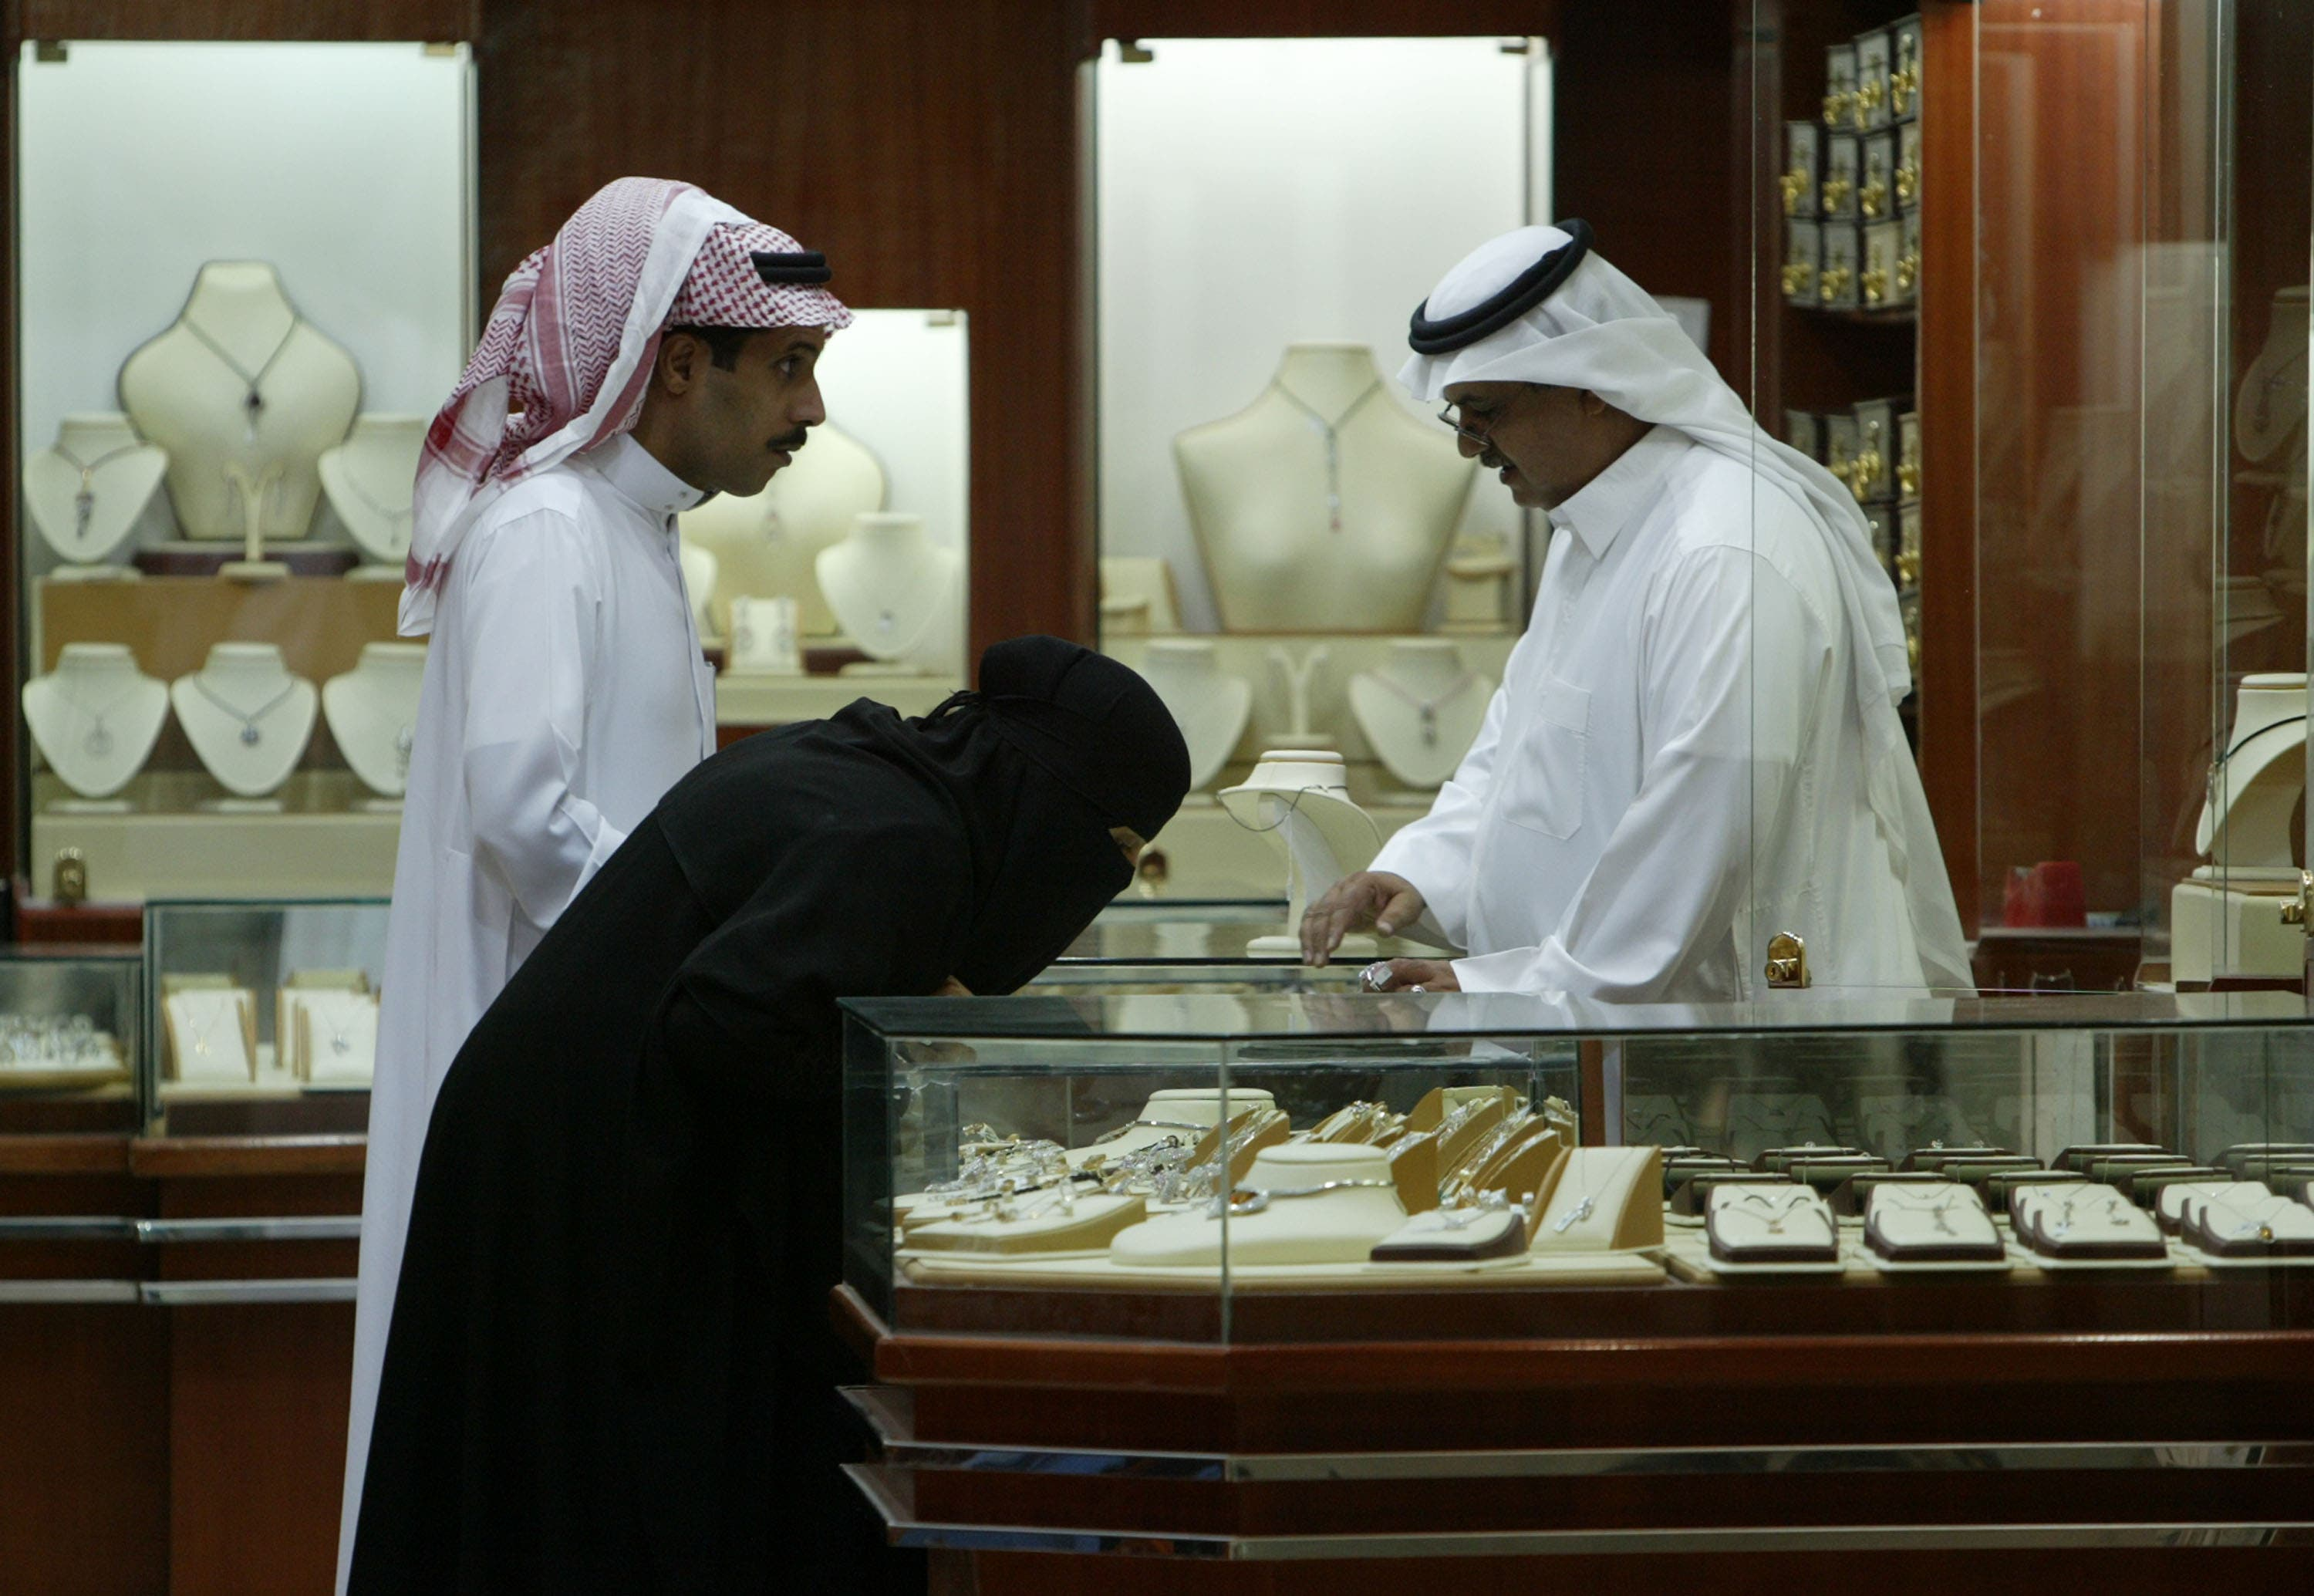 No maids for married women, in Saudi Arabia.